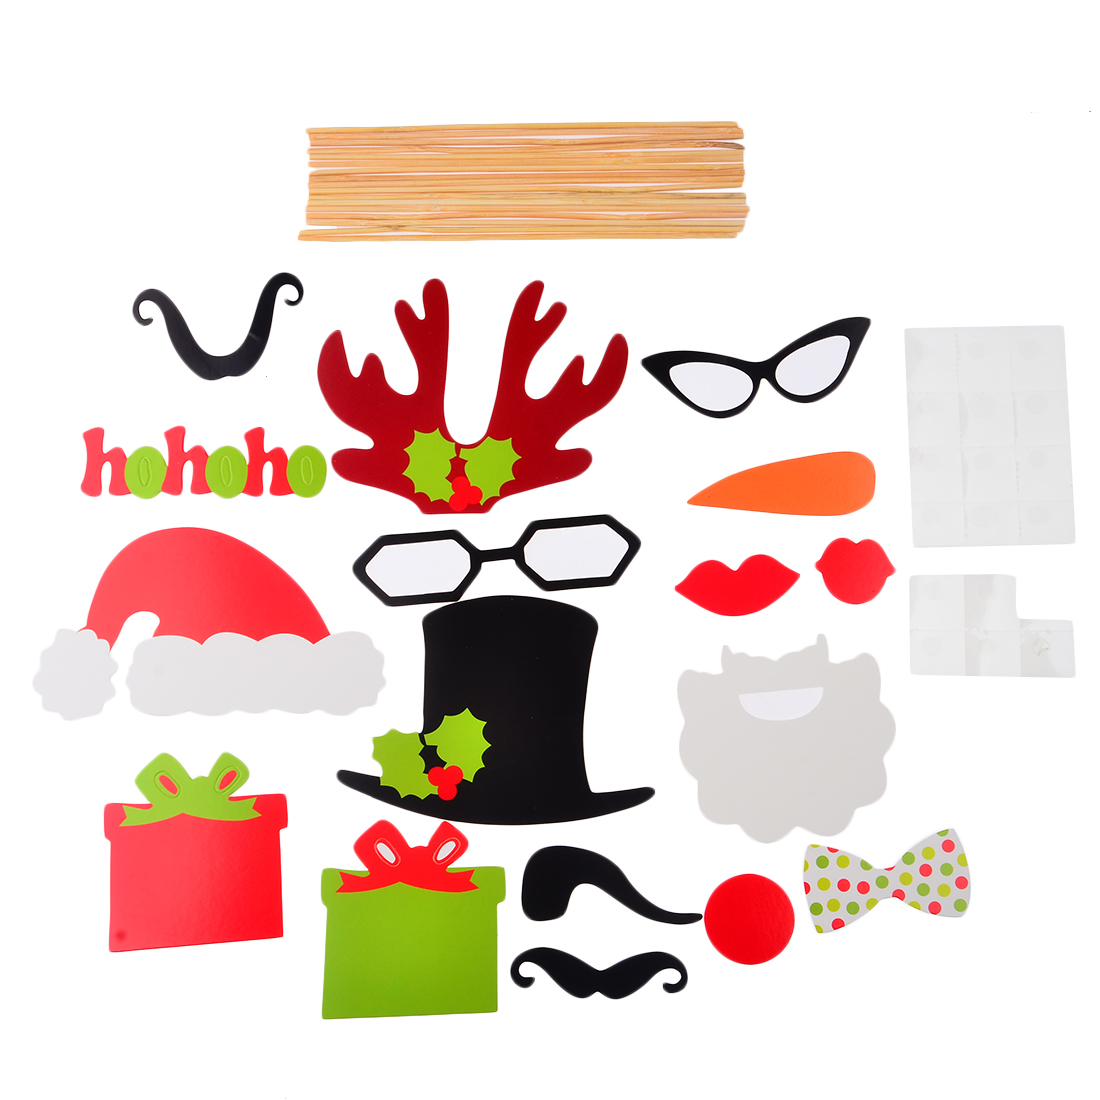 Surwish 17pcs DIY Photo Booth Props Hat Mustache Antlers Glasses On A Stick Wedding Christmas Gift Party Fun Supplies